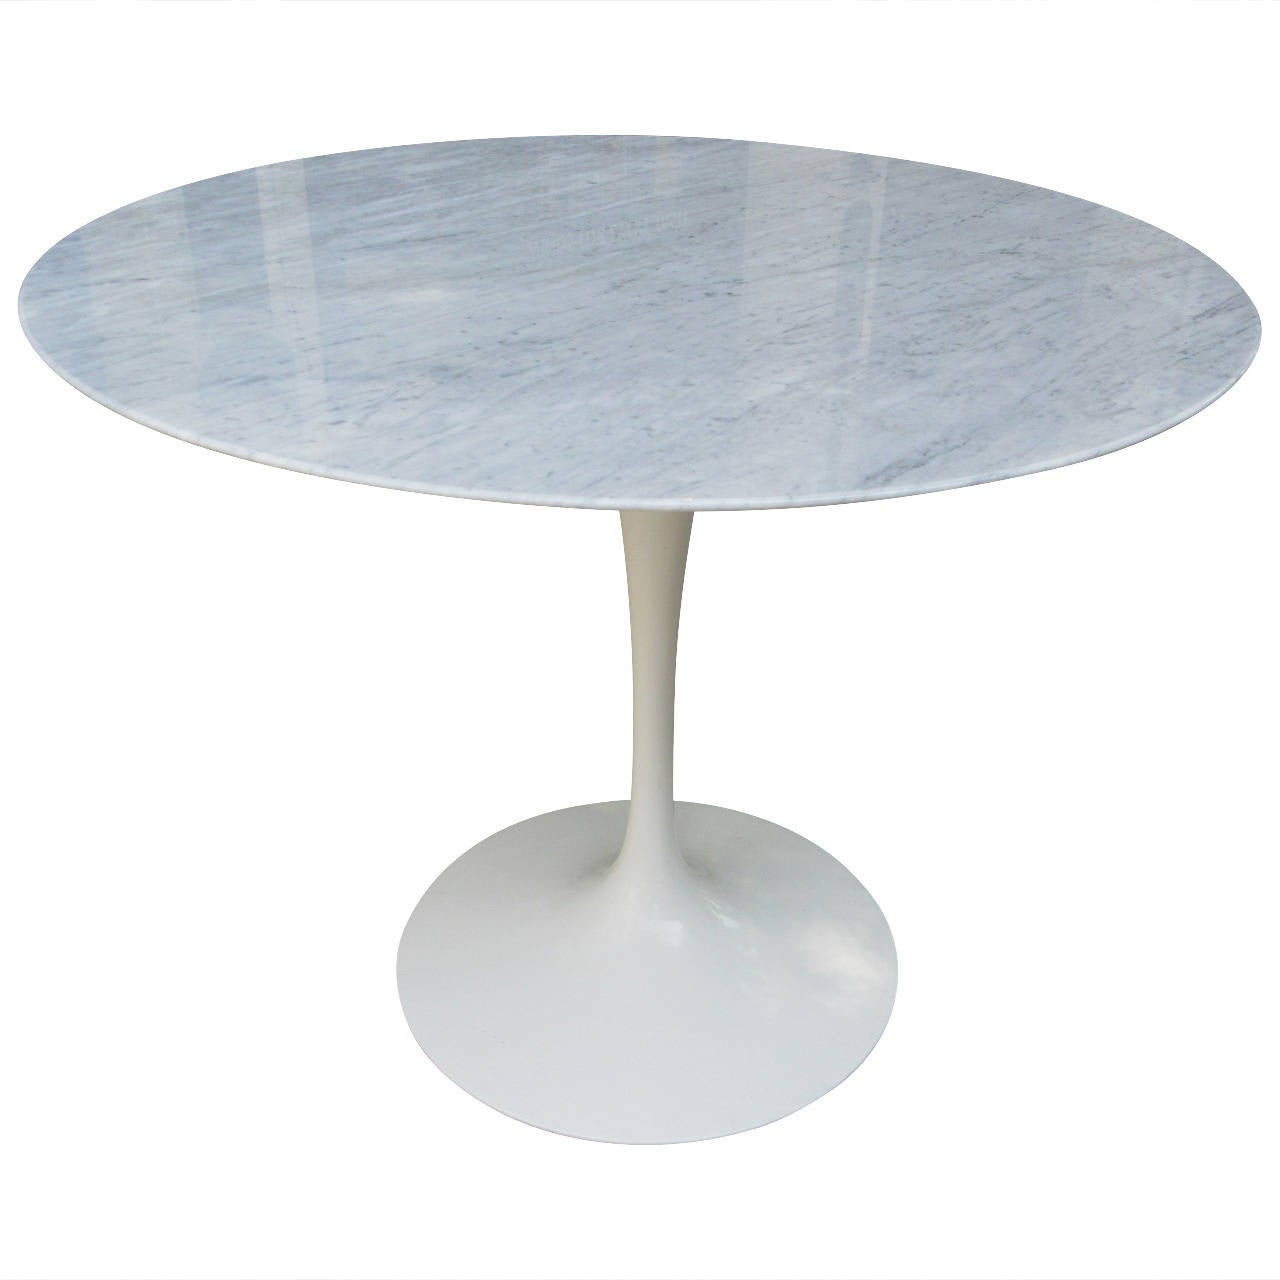 Eero saarinen tulip dining table in marble for Tulip dining table